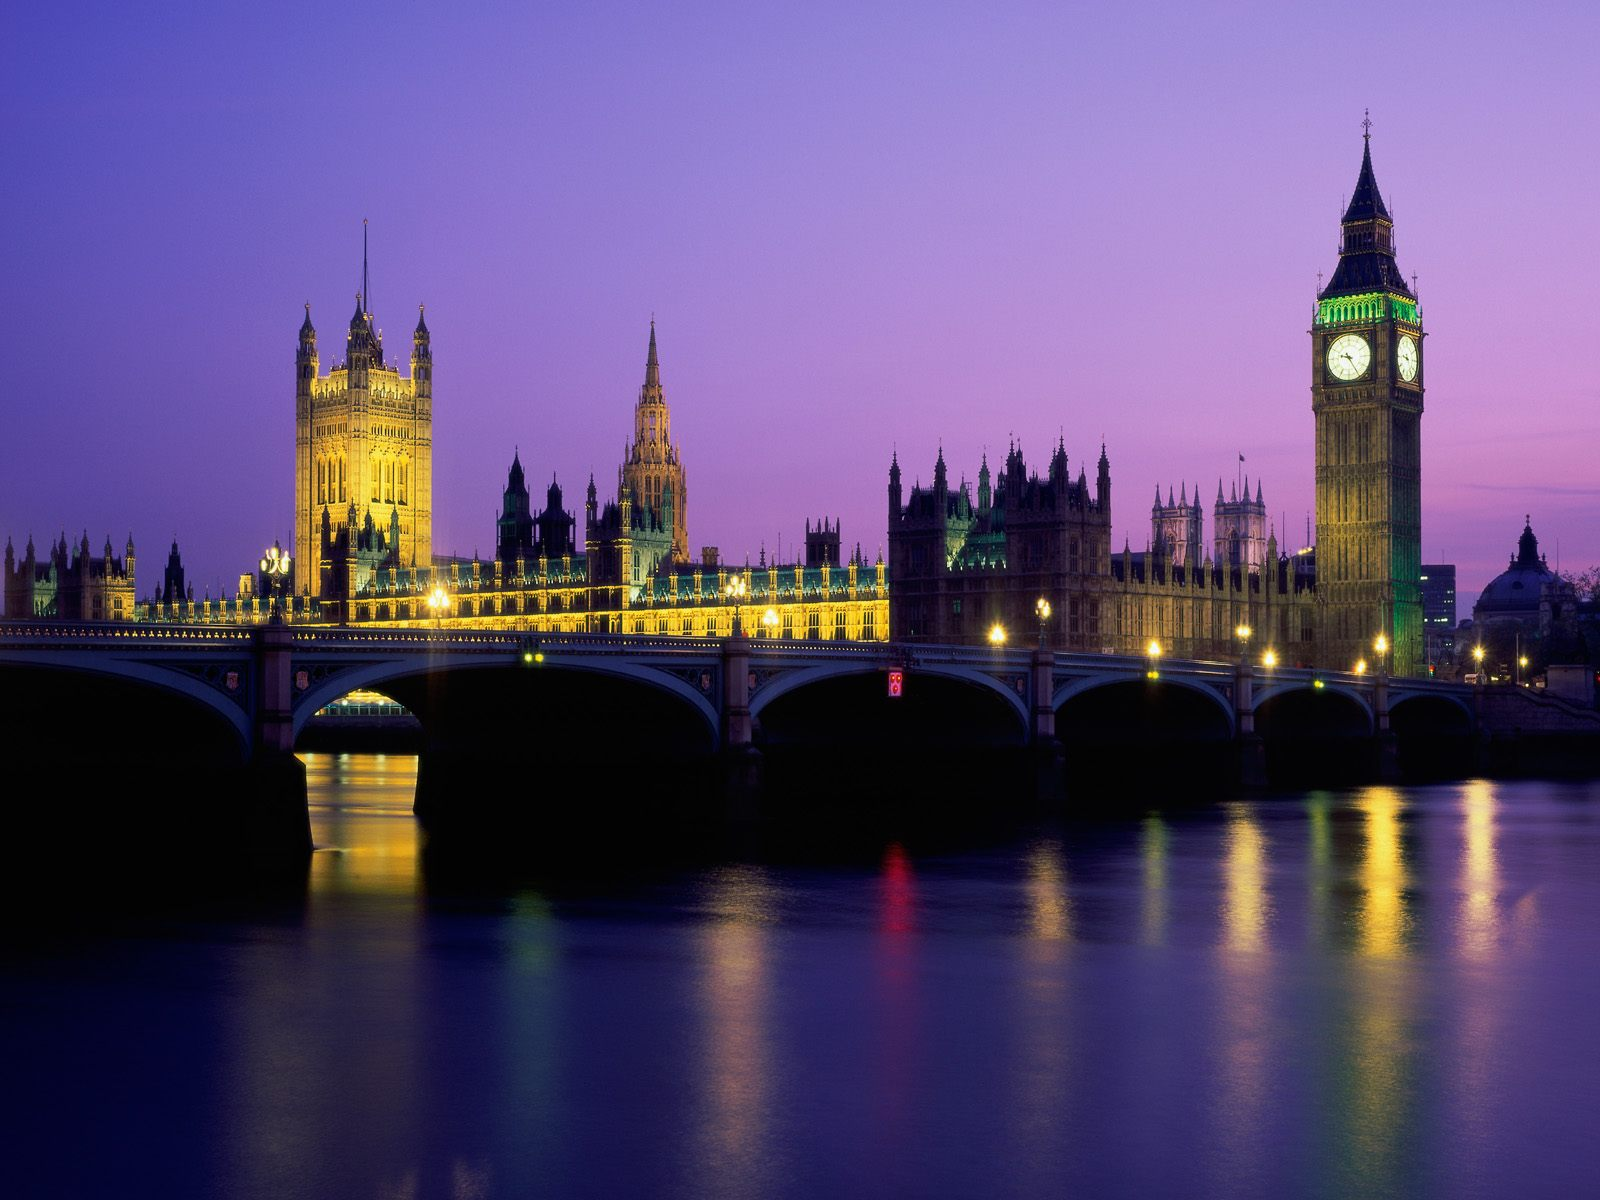 london wallpapers your selected image as your desktop wallpaper you 1600x1200